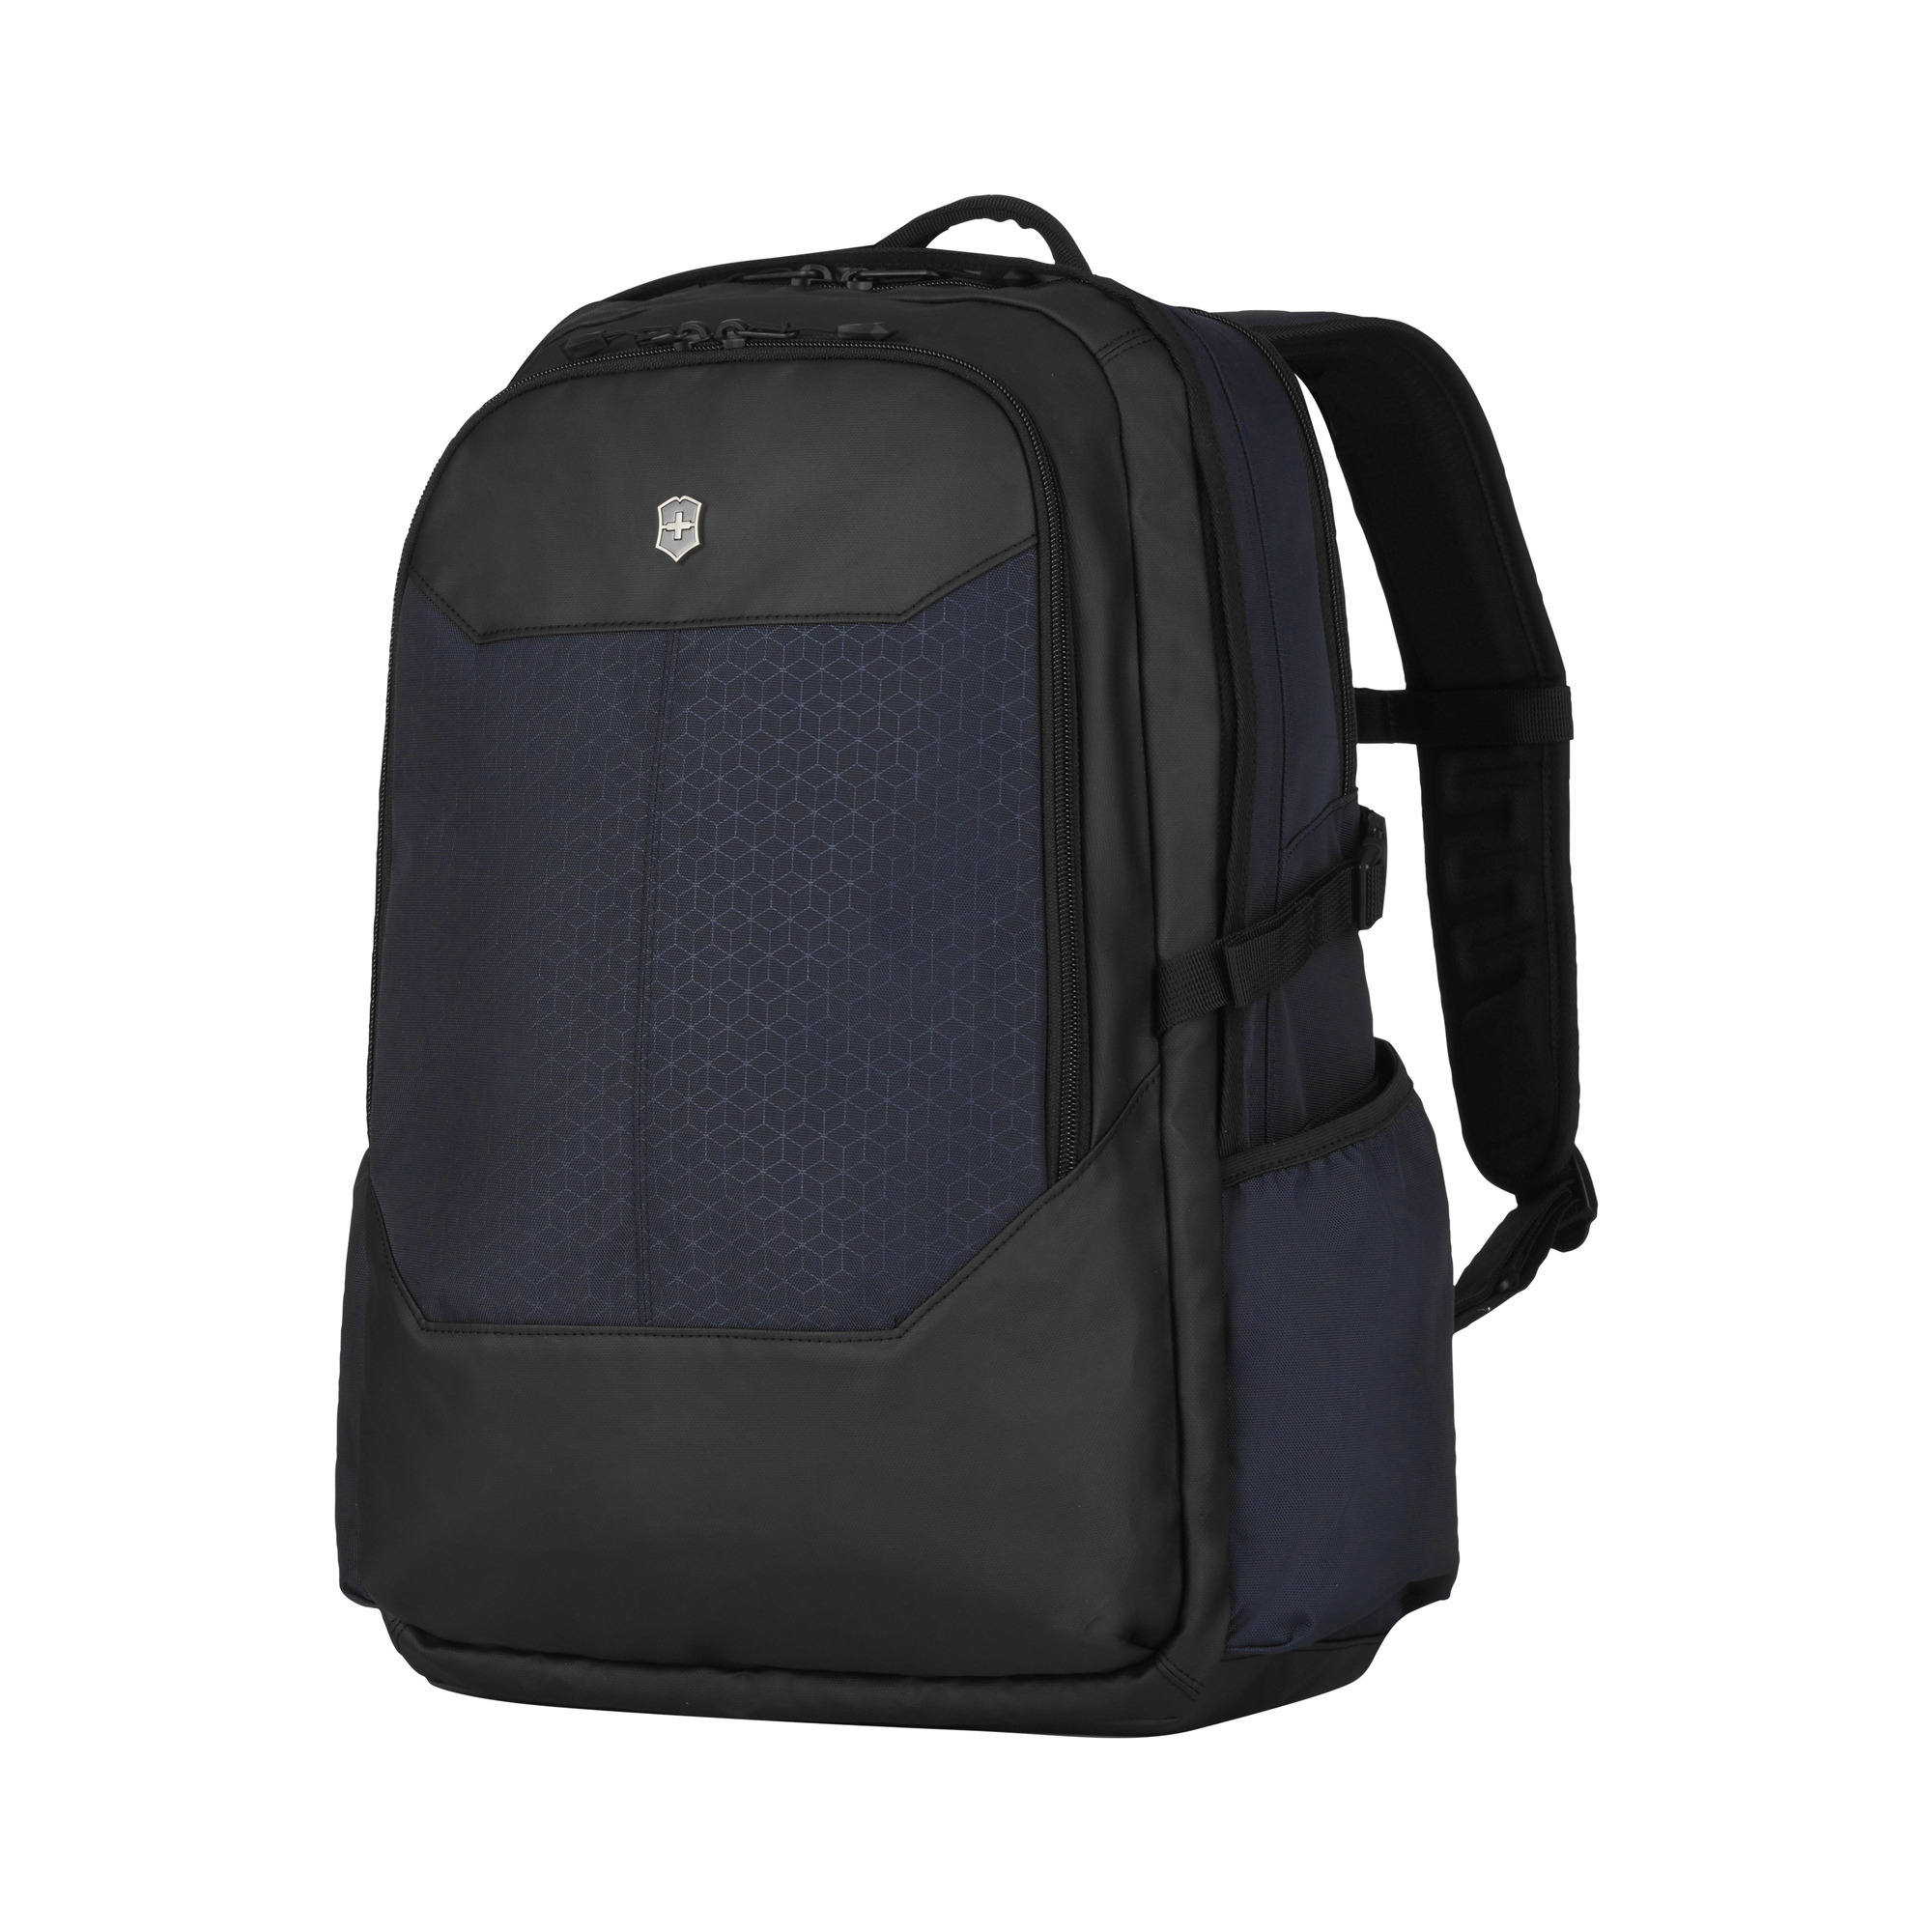 Altmont Original Deluxe Laptop Backpack